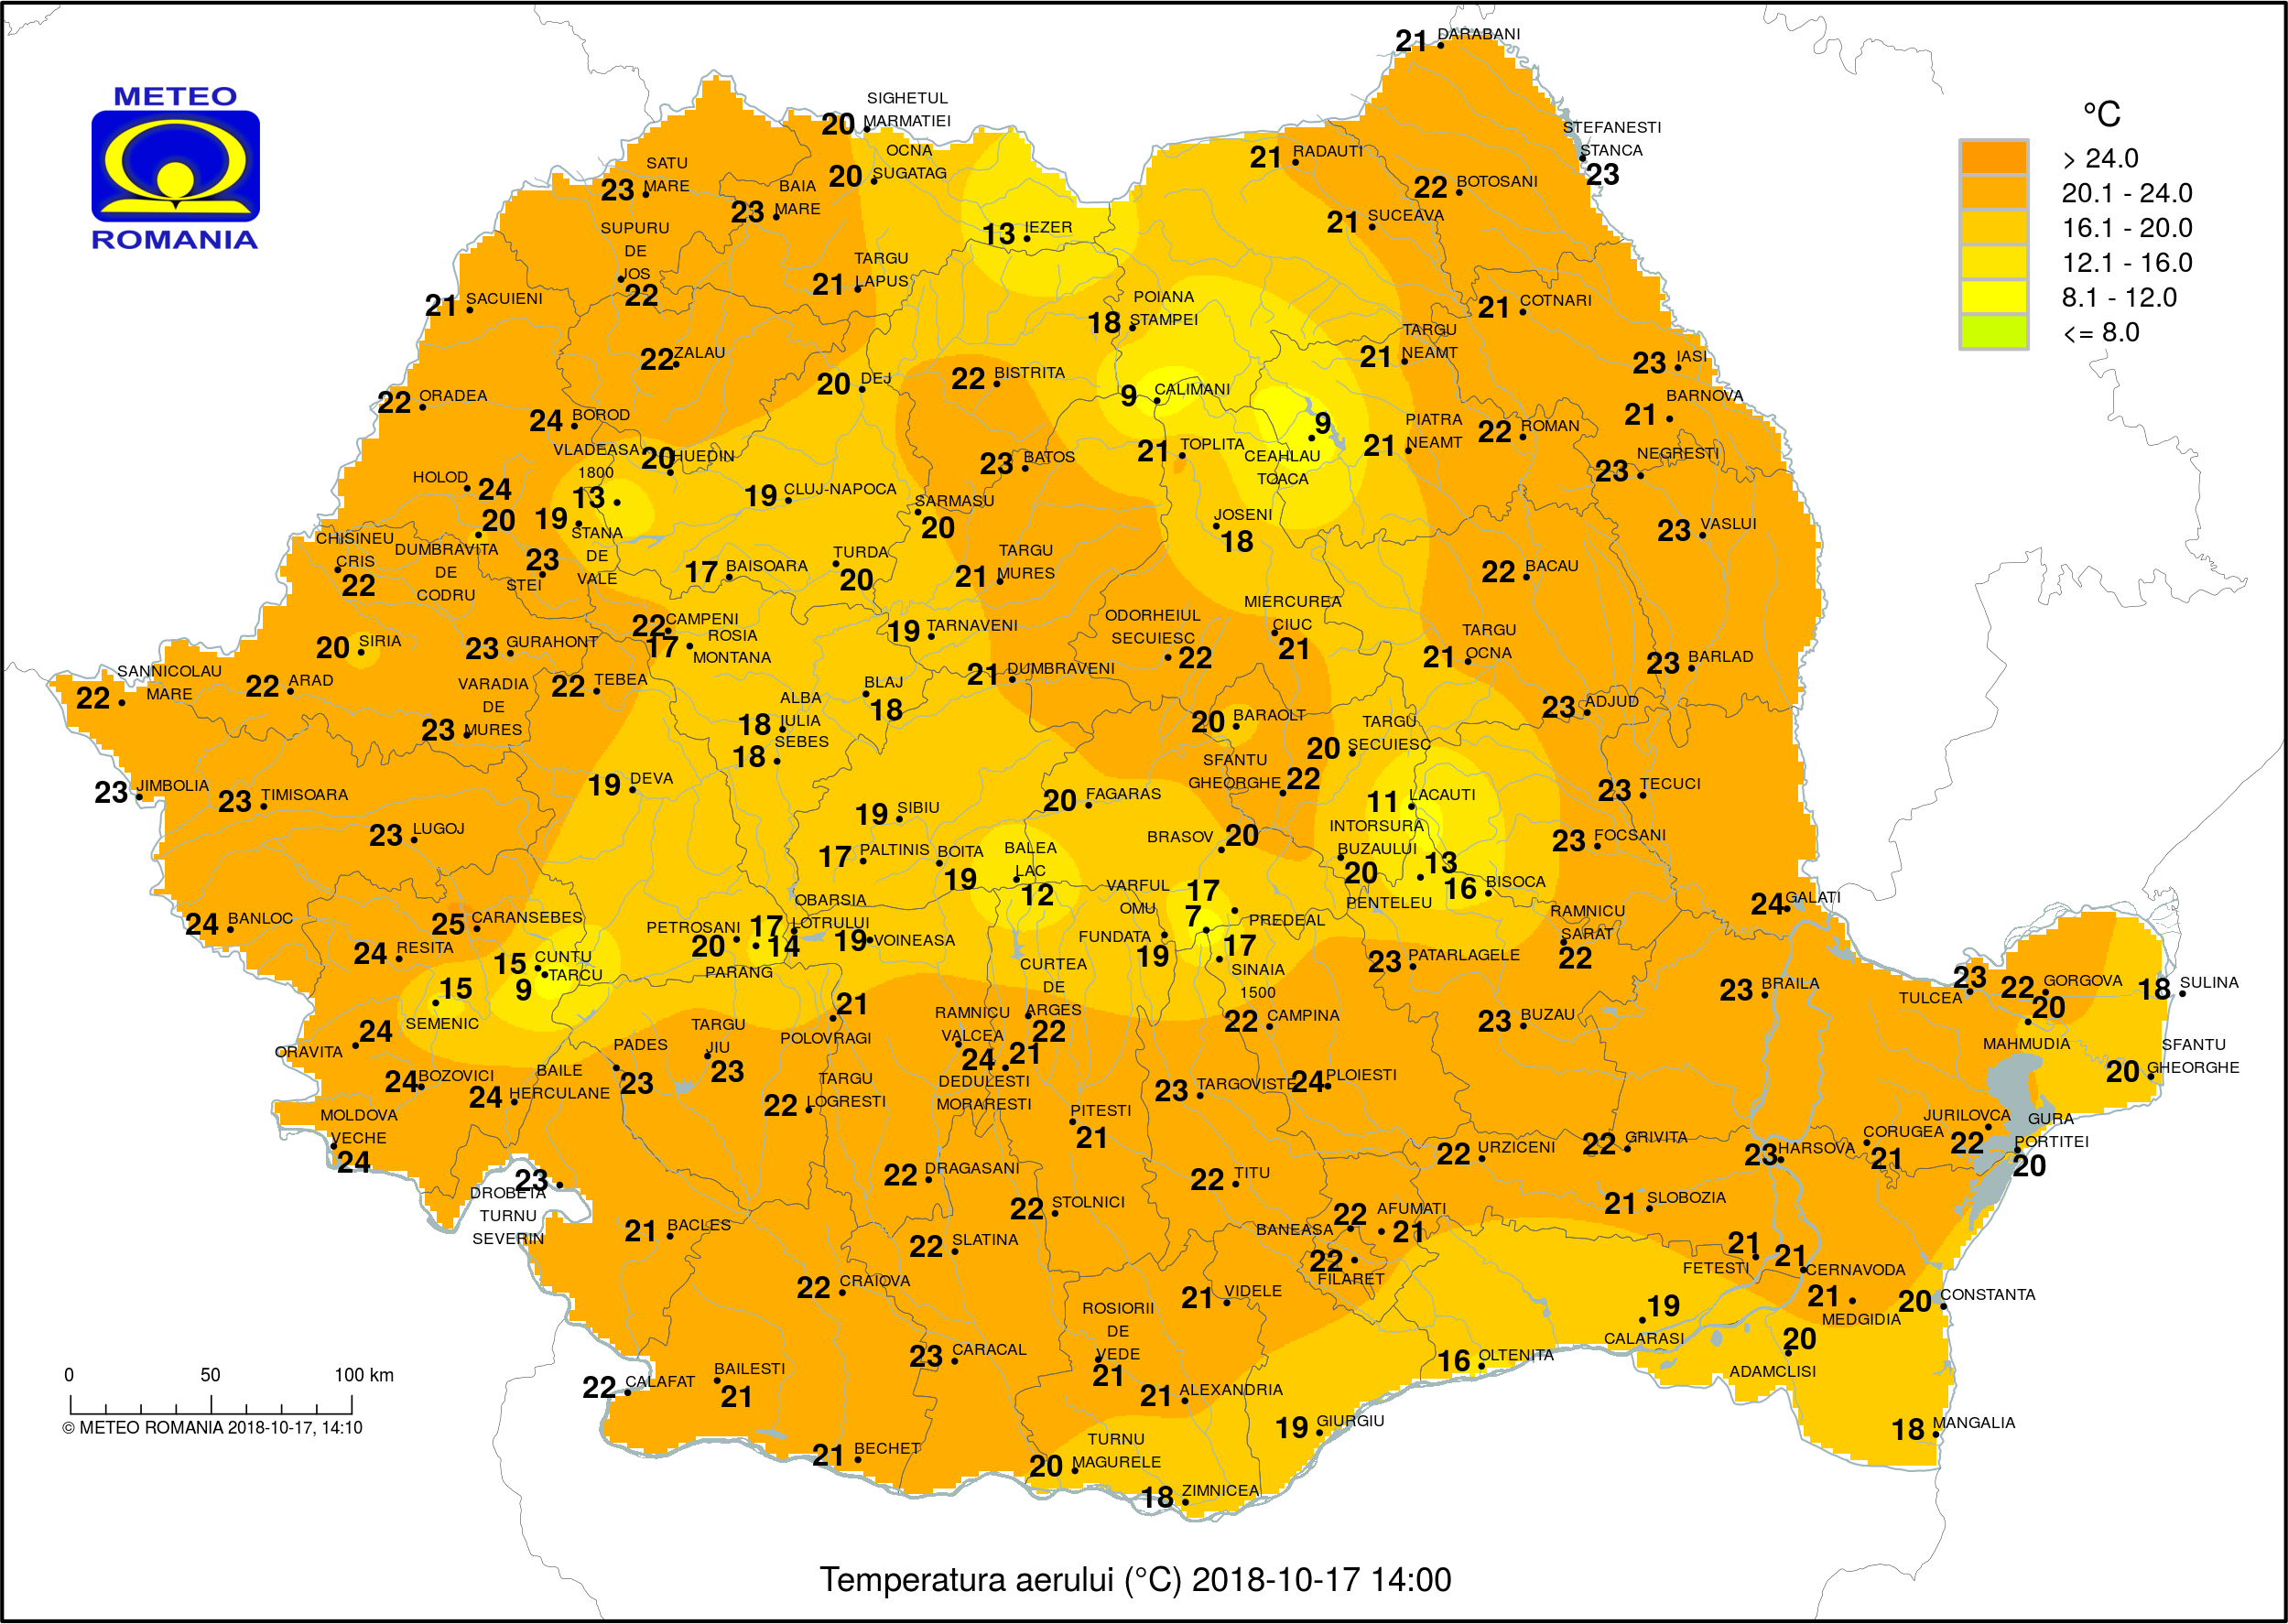 Temperaturi ora 14 #Romania (2 pm o'clock Romania temperature)